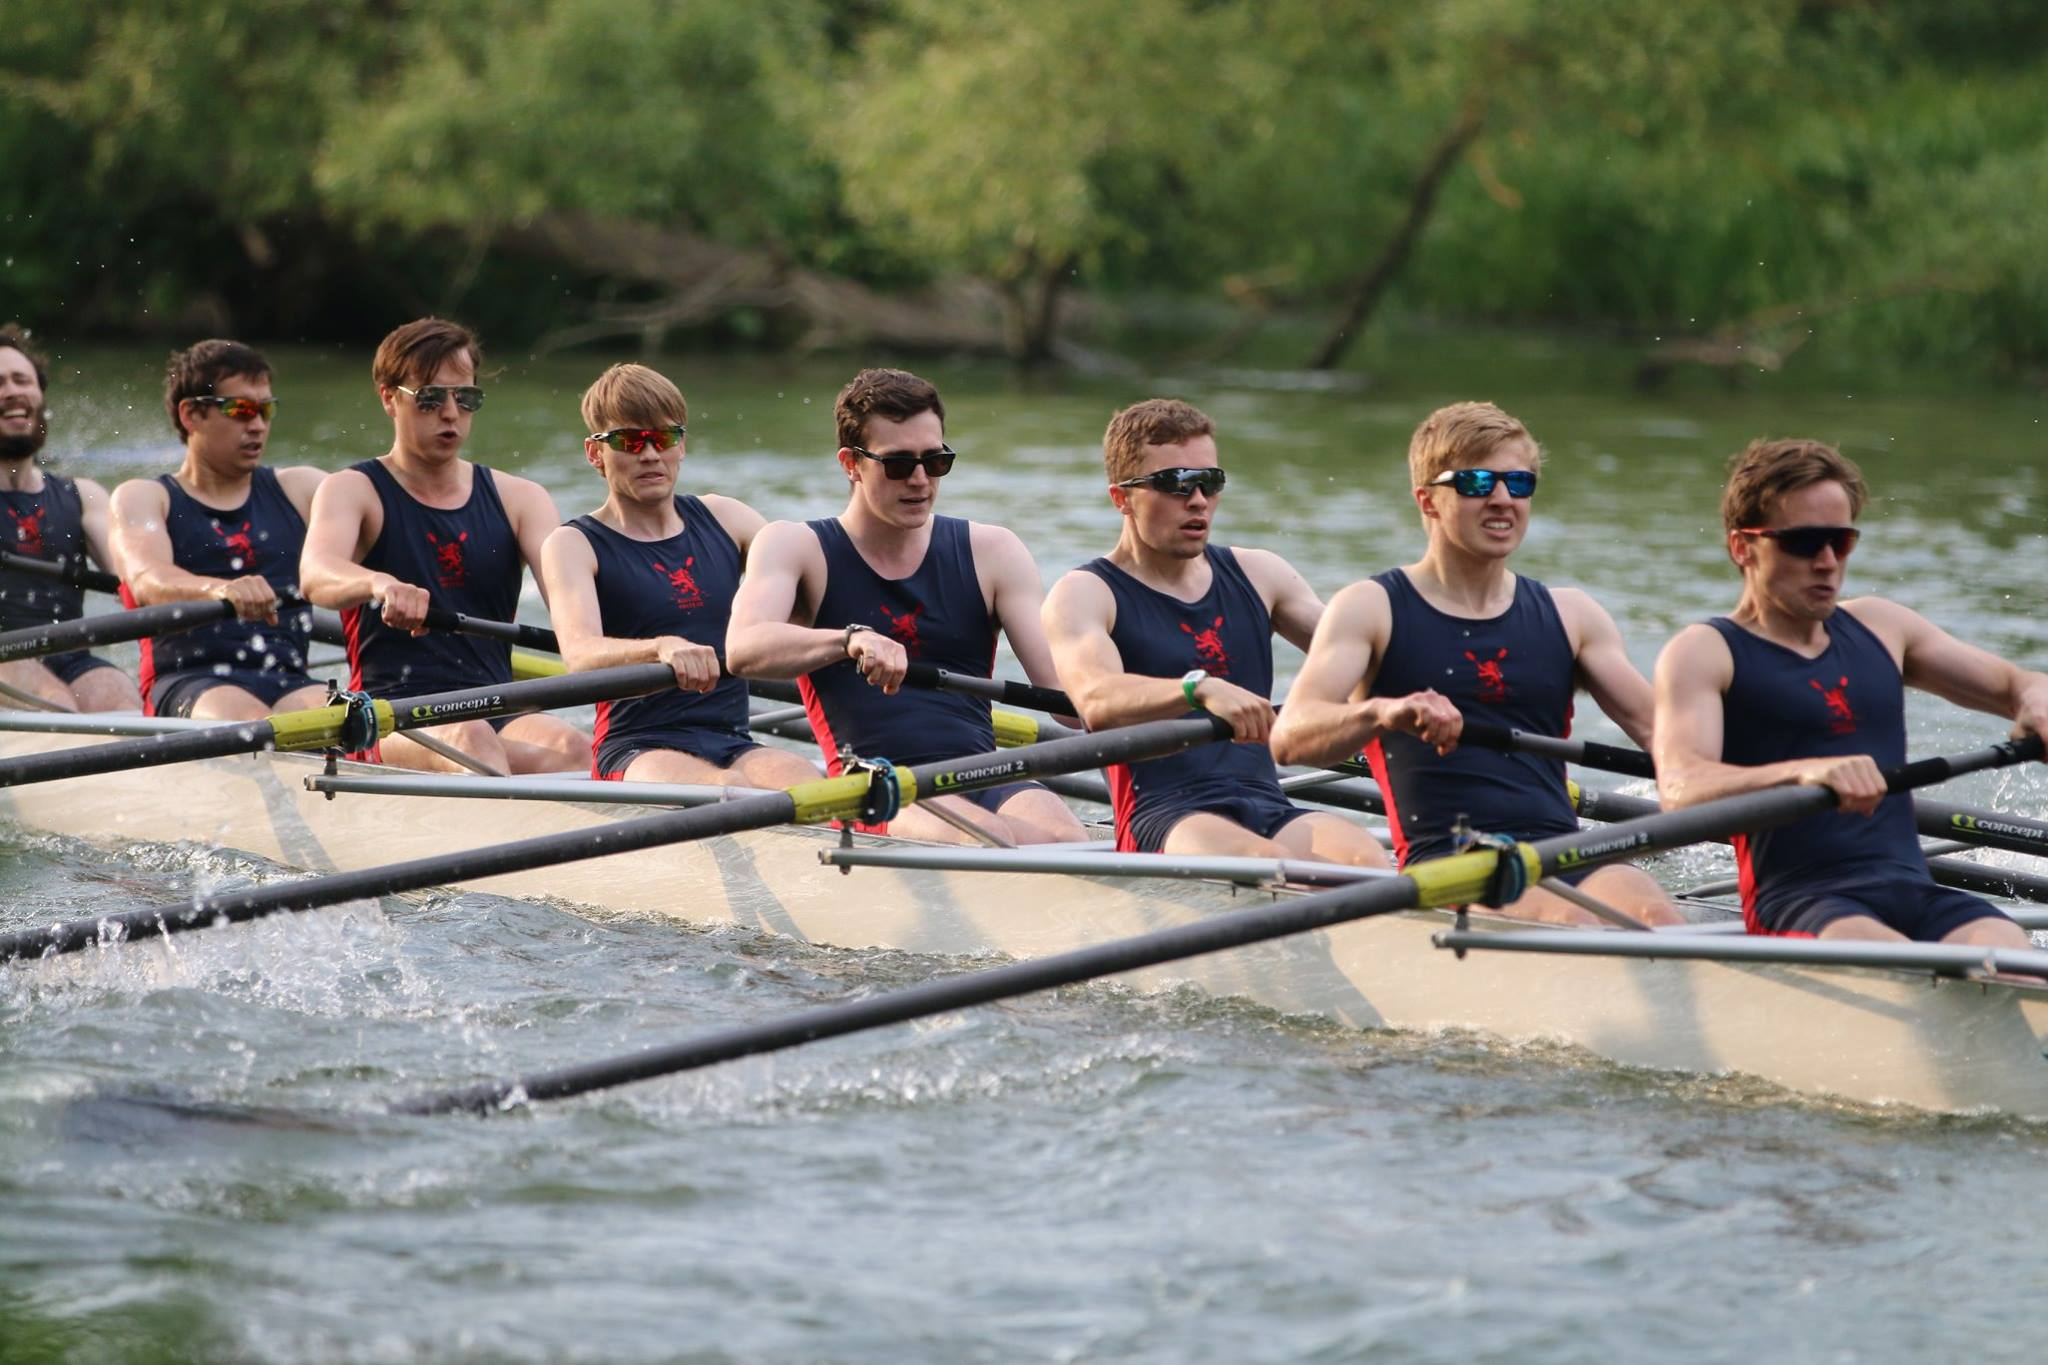 M1 Summer Eights 2018 (photo: Gareth Ardron)